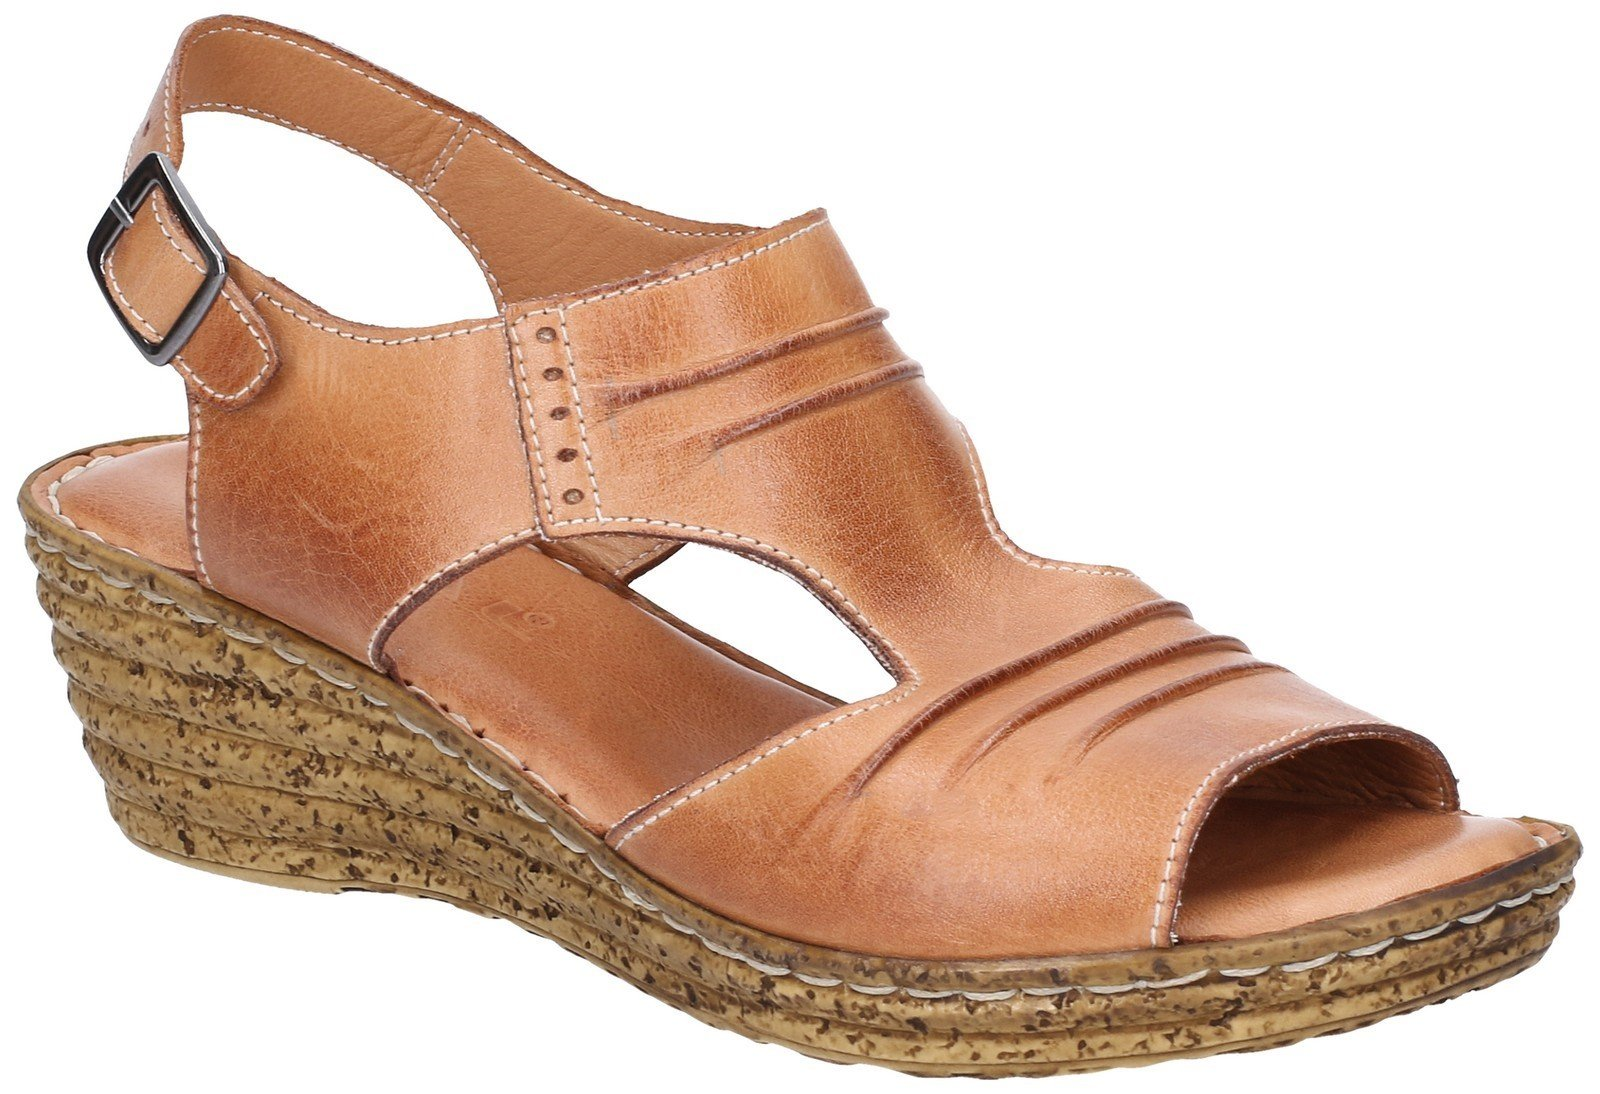 Fleet & Foster Women's Incence Pleated Leather Sandal Various Colours 28272 - Light Brown 3